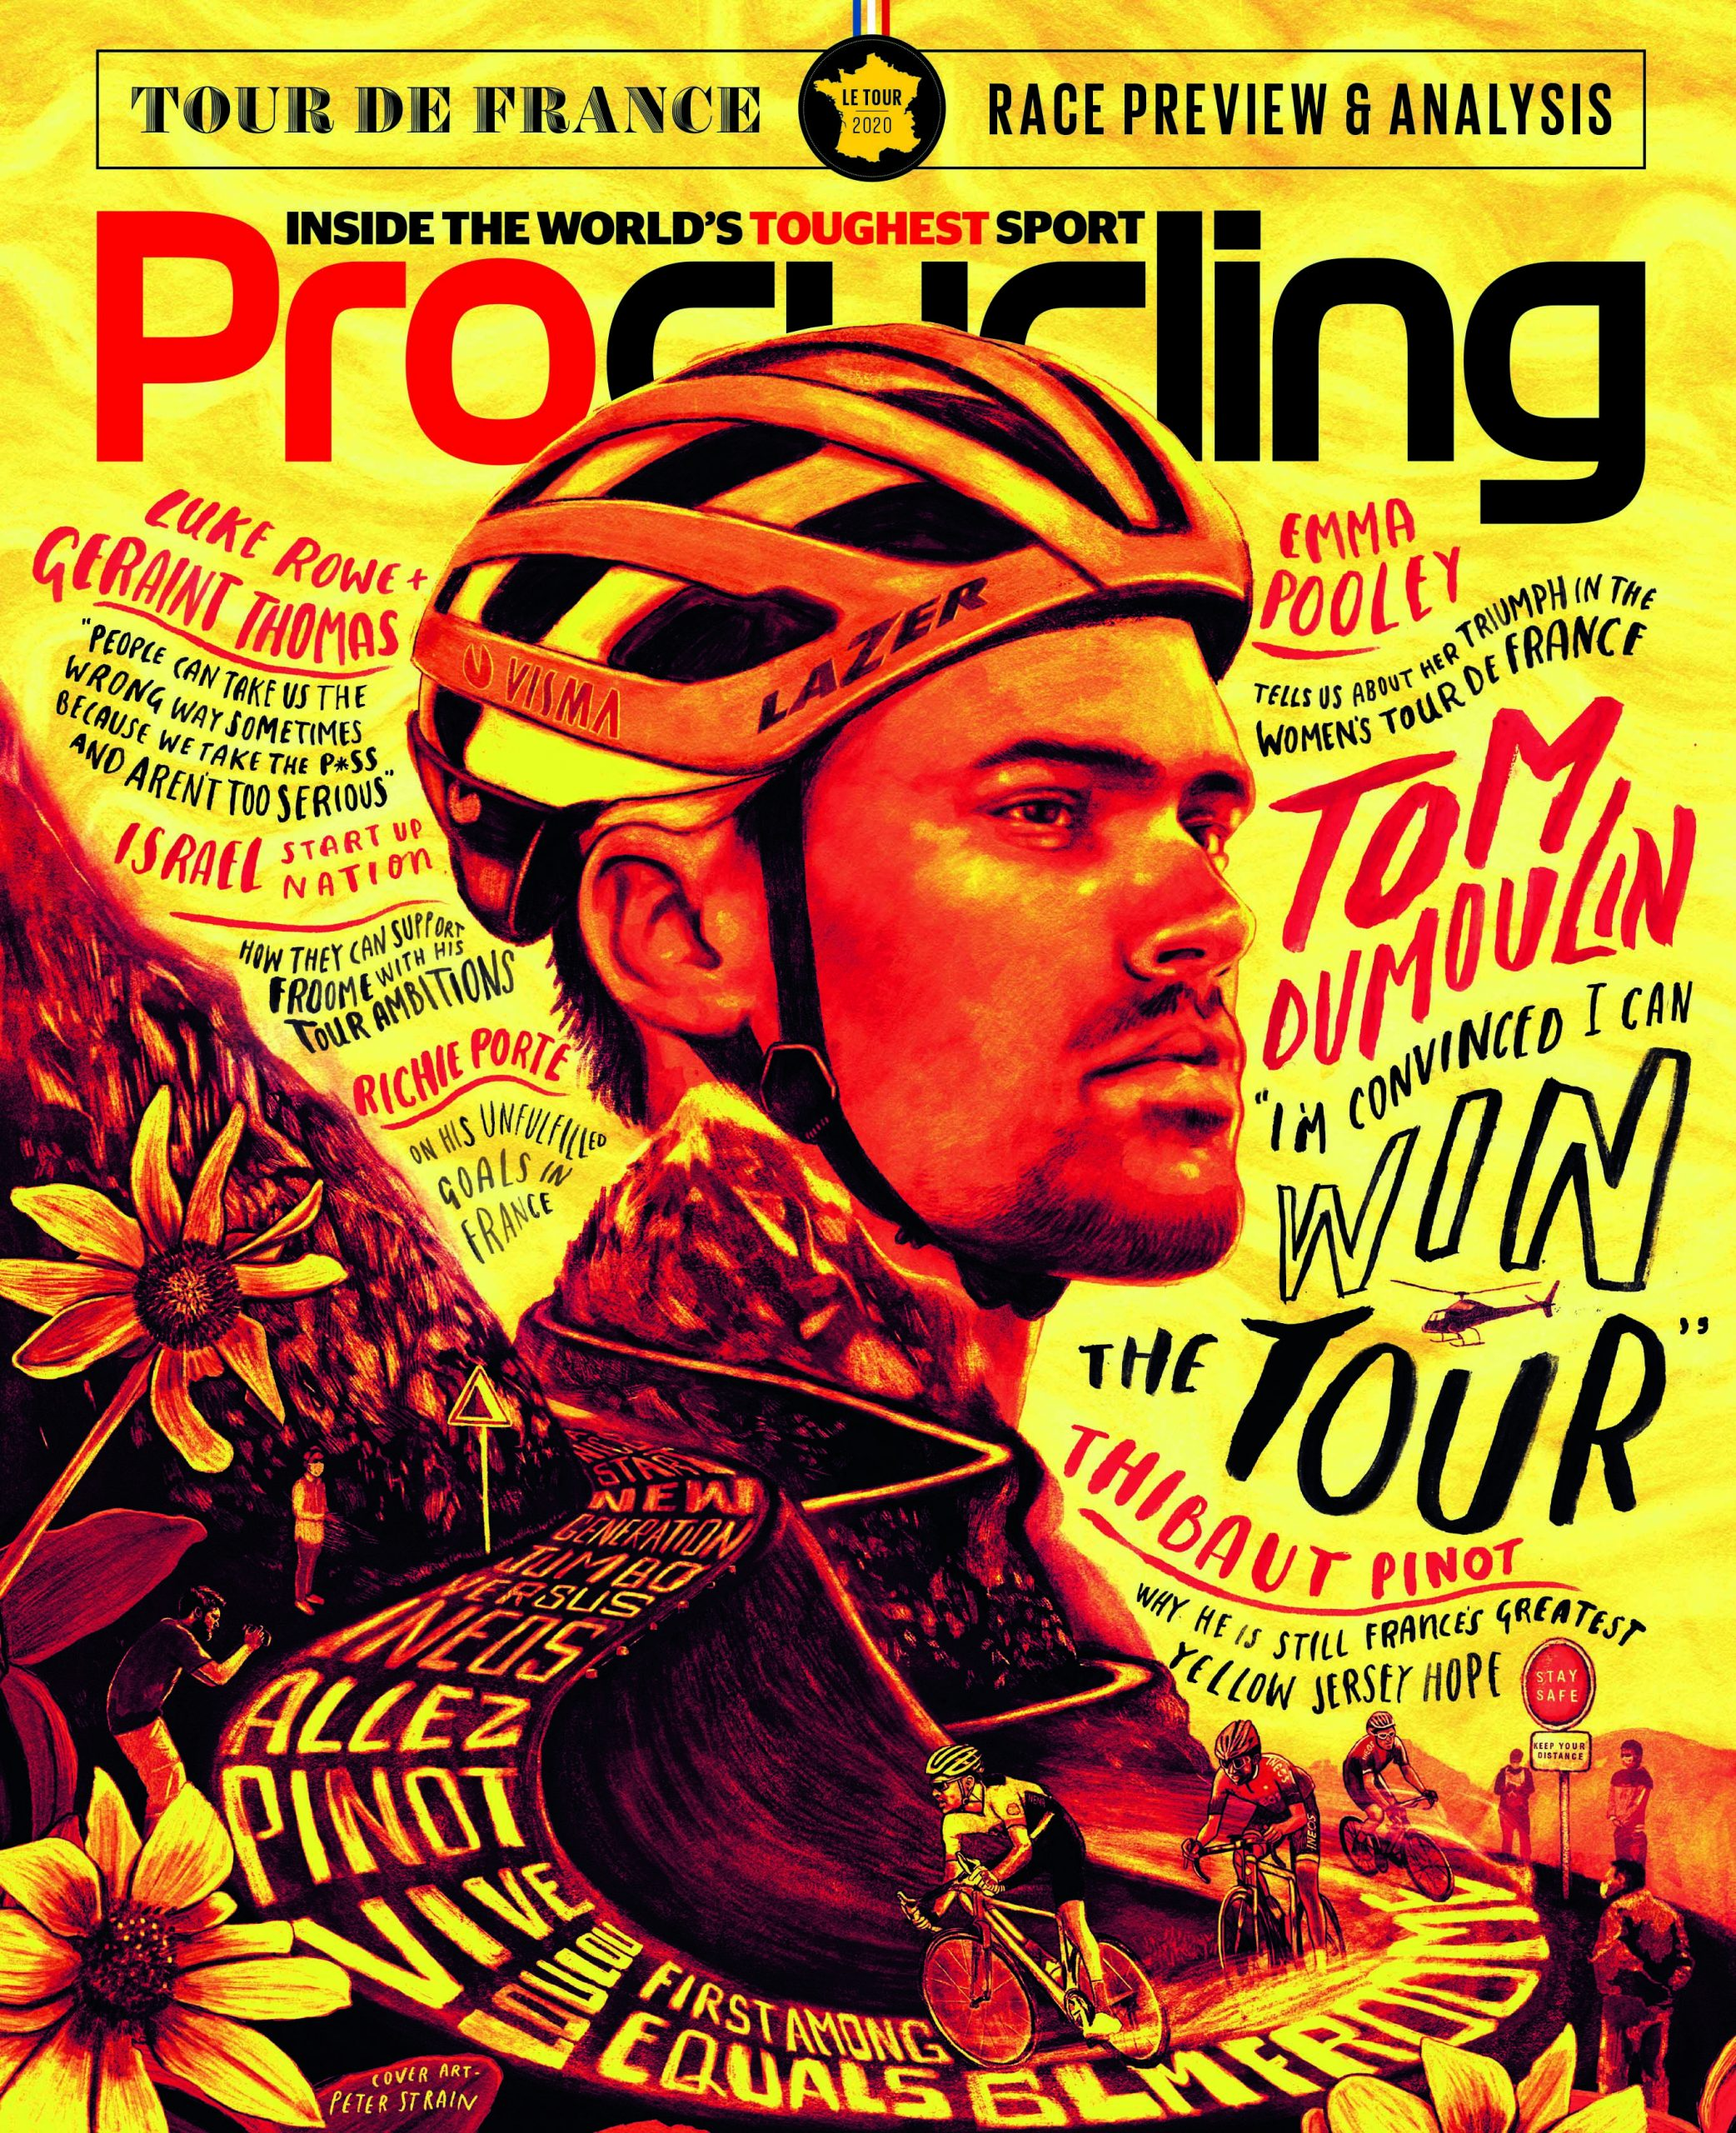 The Procycling Tour de France 2020 preview is out now - Cycling Weekly